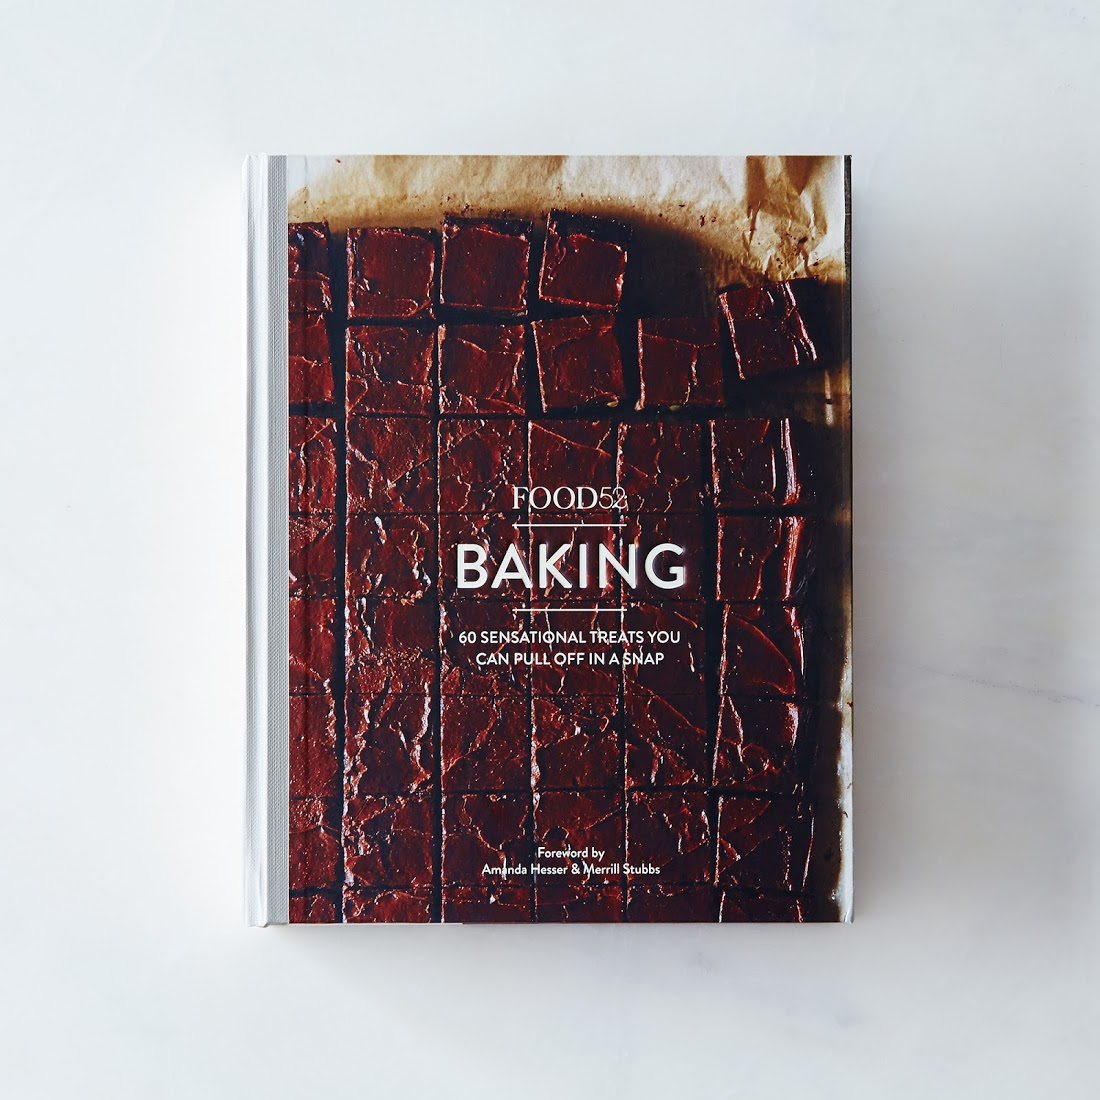 Our photographer's favorite shots from the Food52 Baking Cookbook